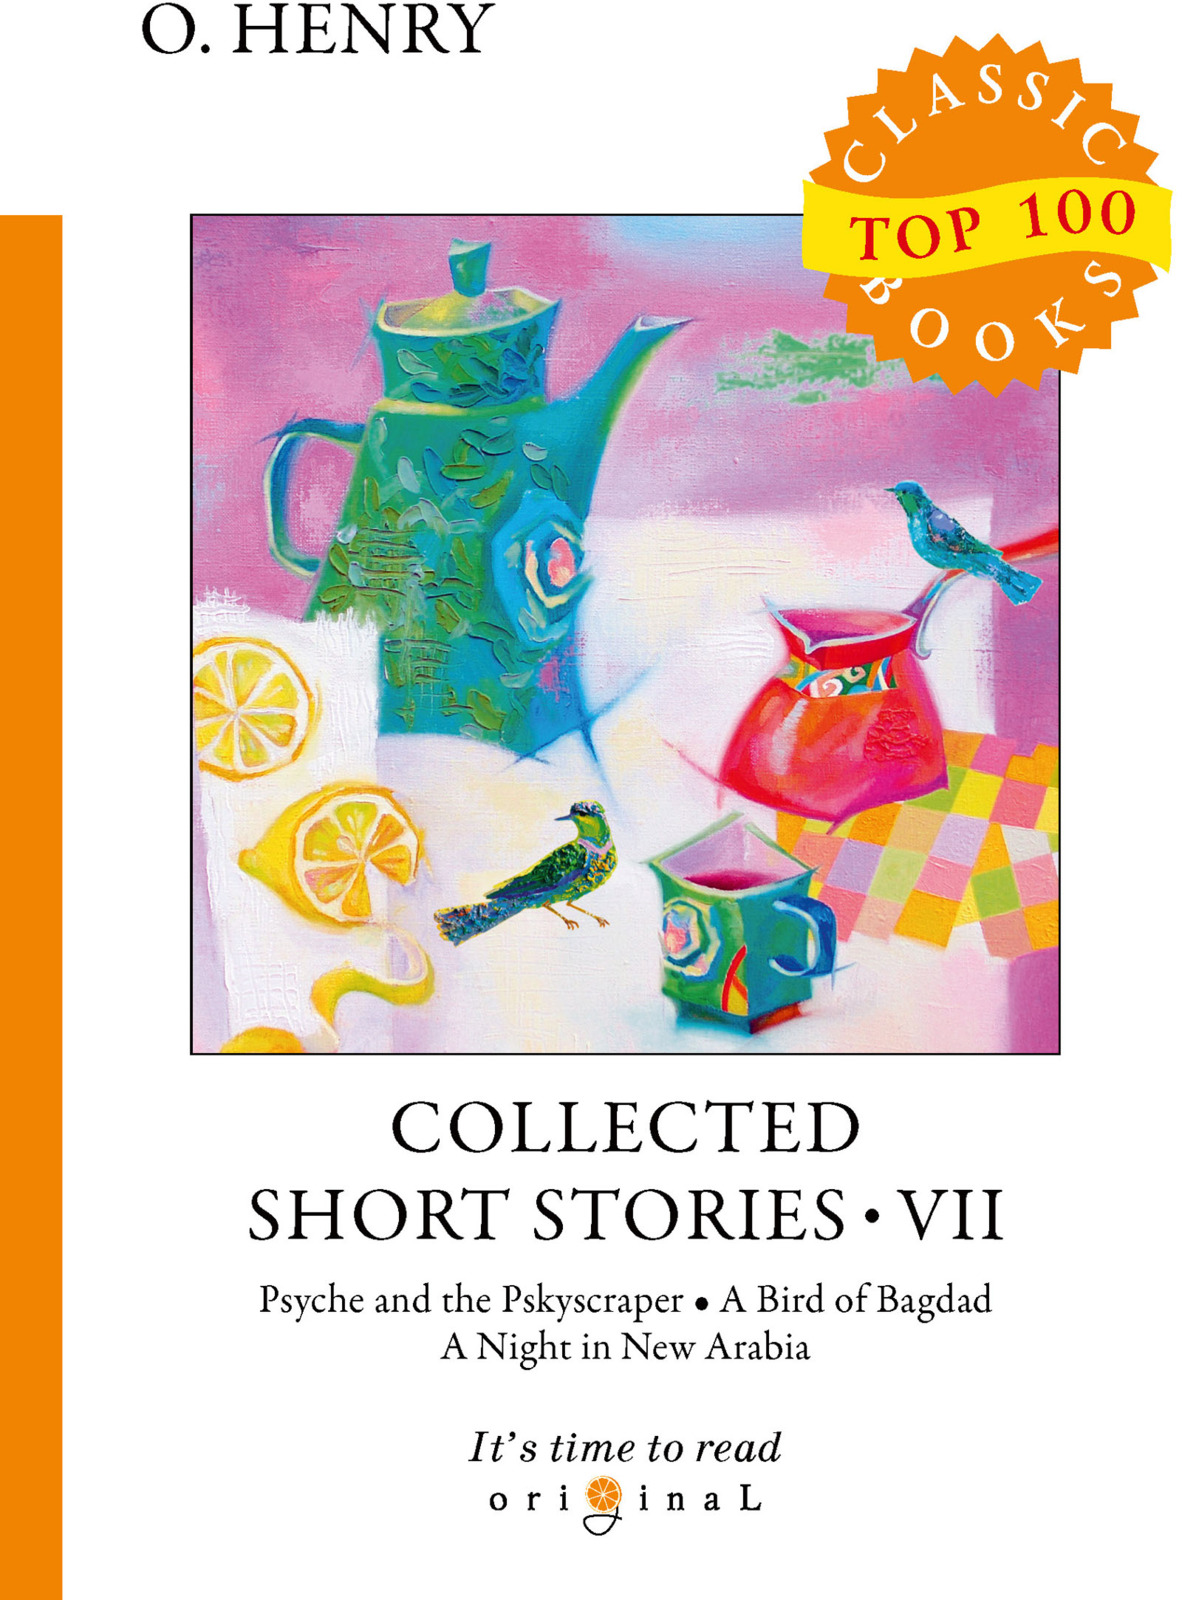 O. Henry Collected Short Stories VII short stories